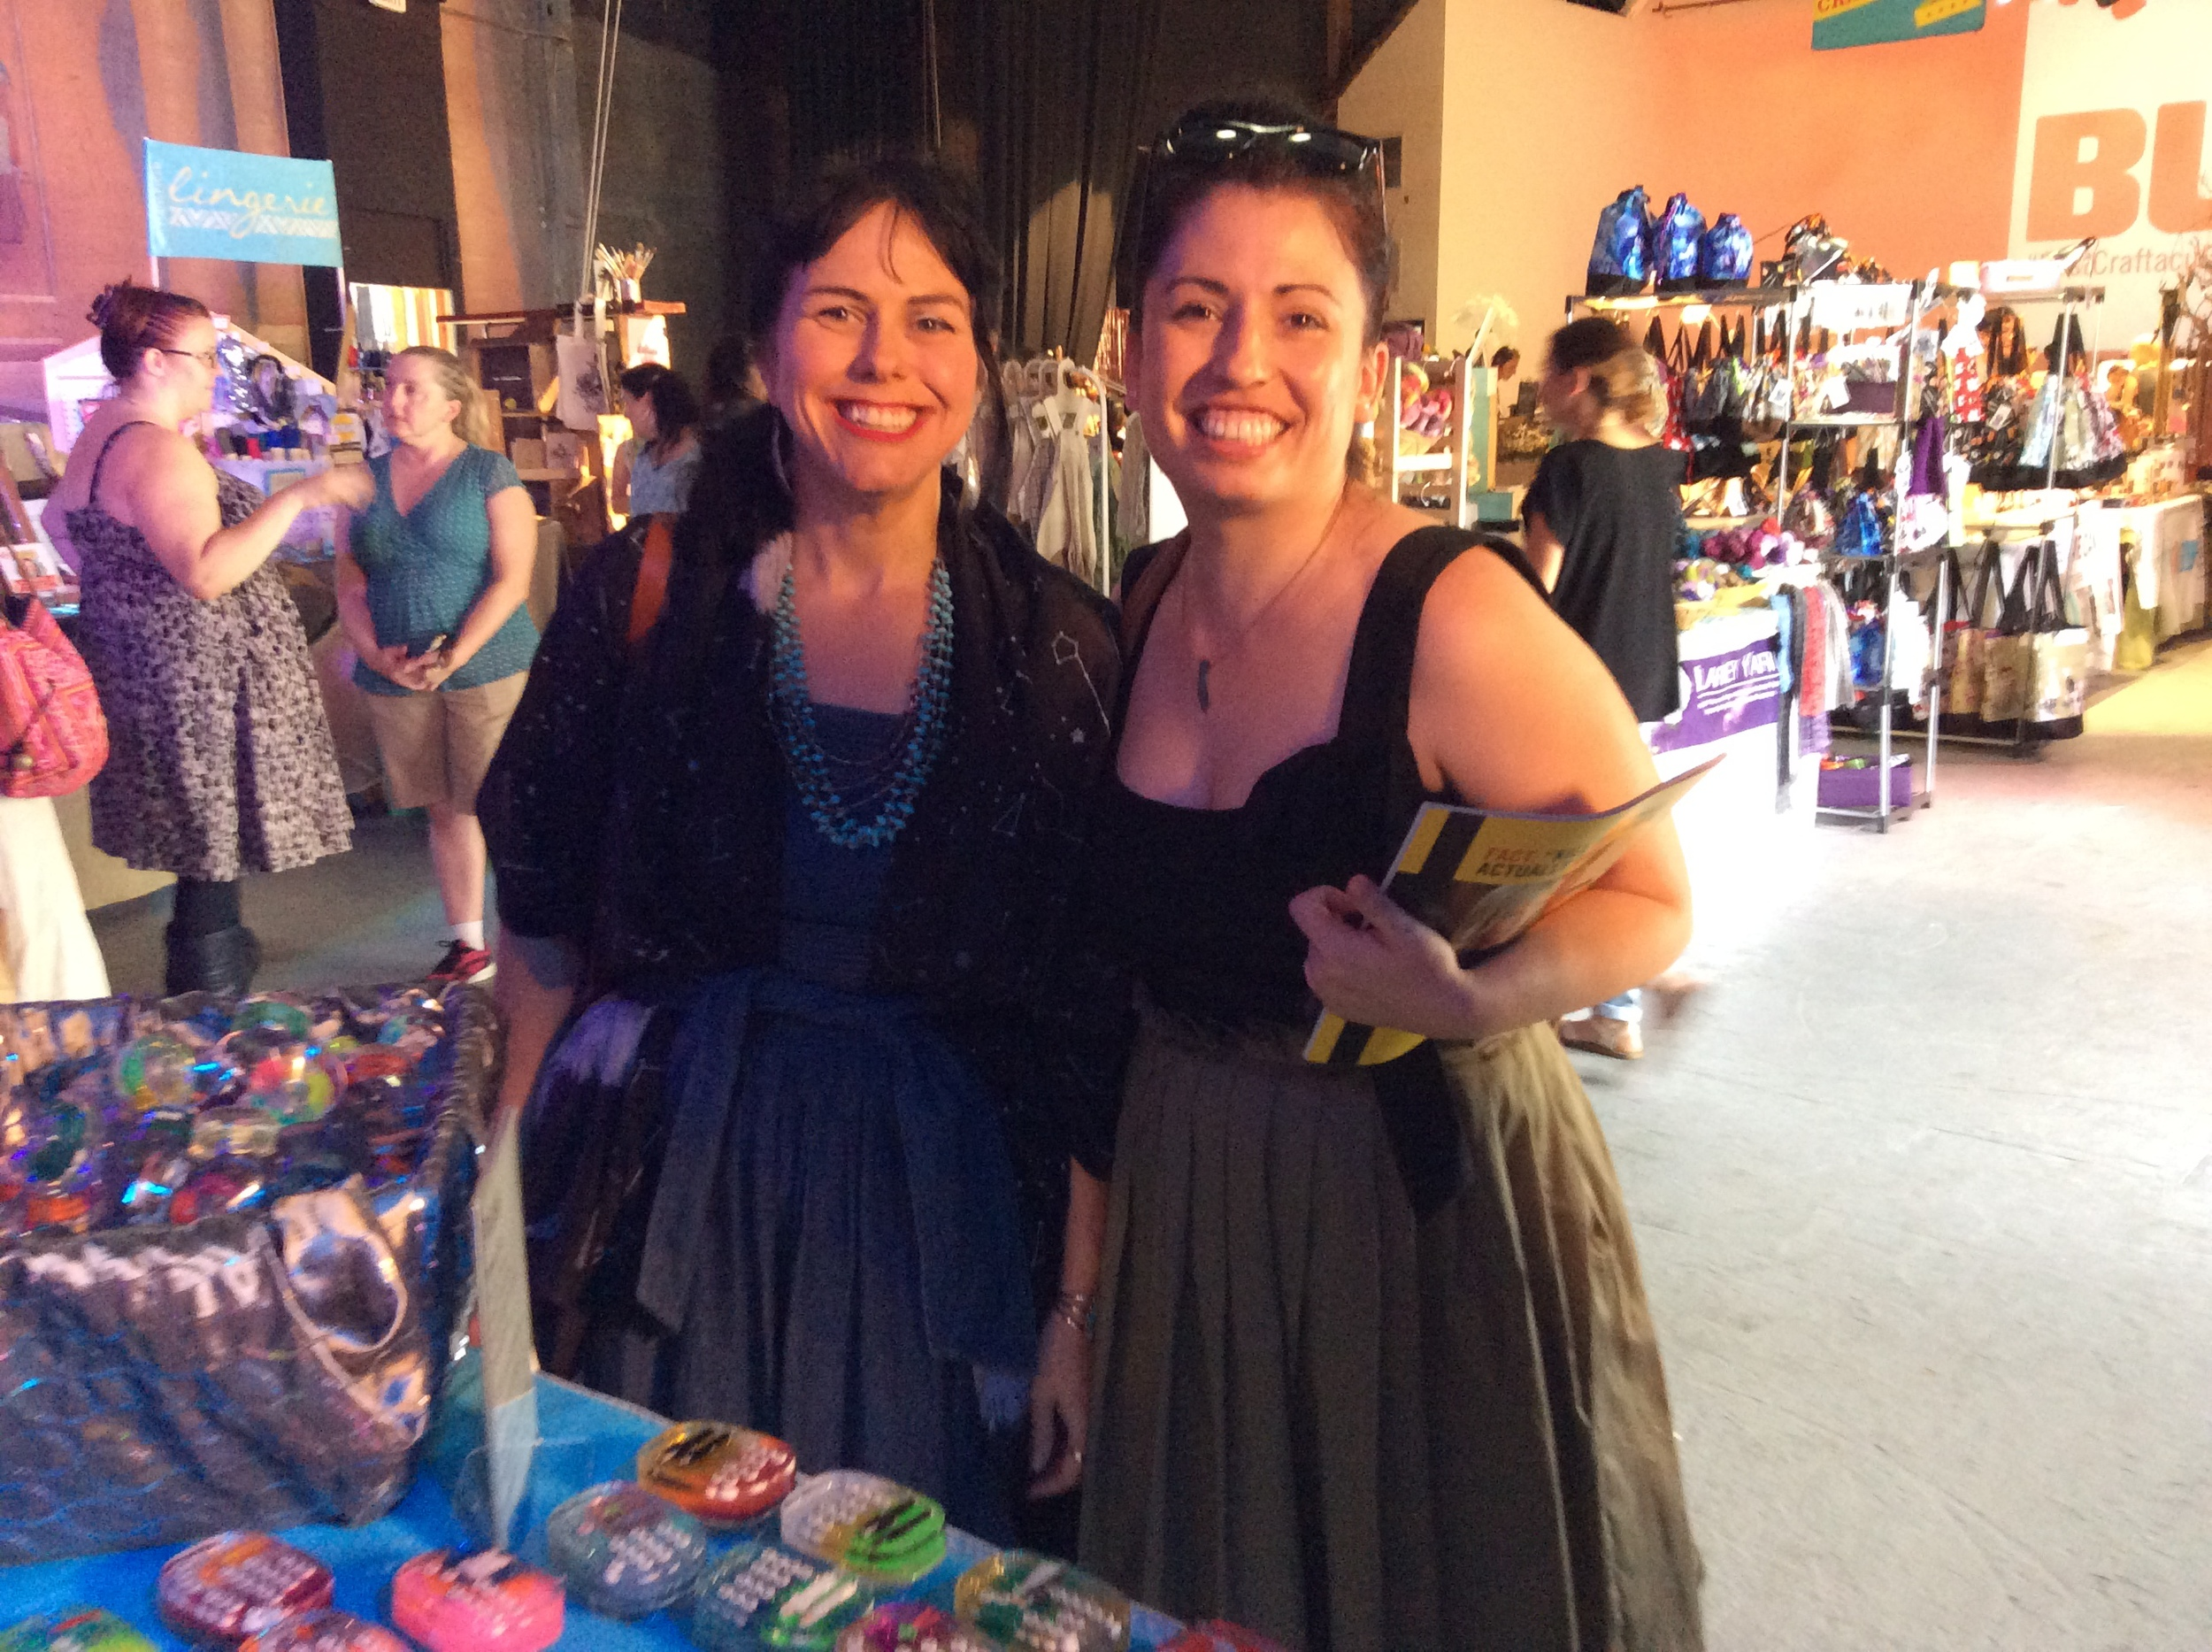 Member Miriam Dema and co-founder Sharon stopped by to say hi to Rosalie at the show.